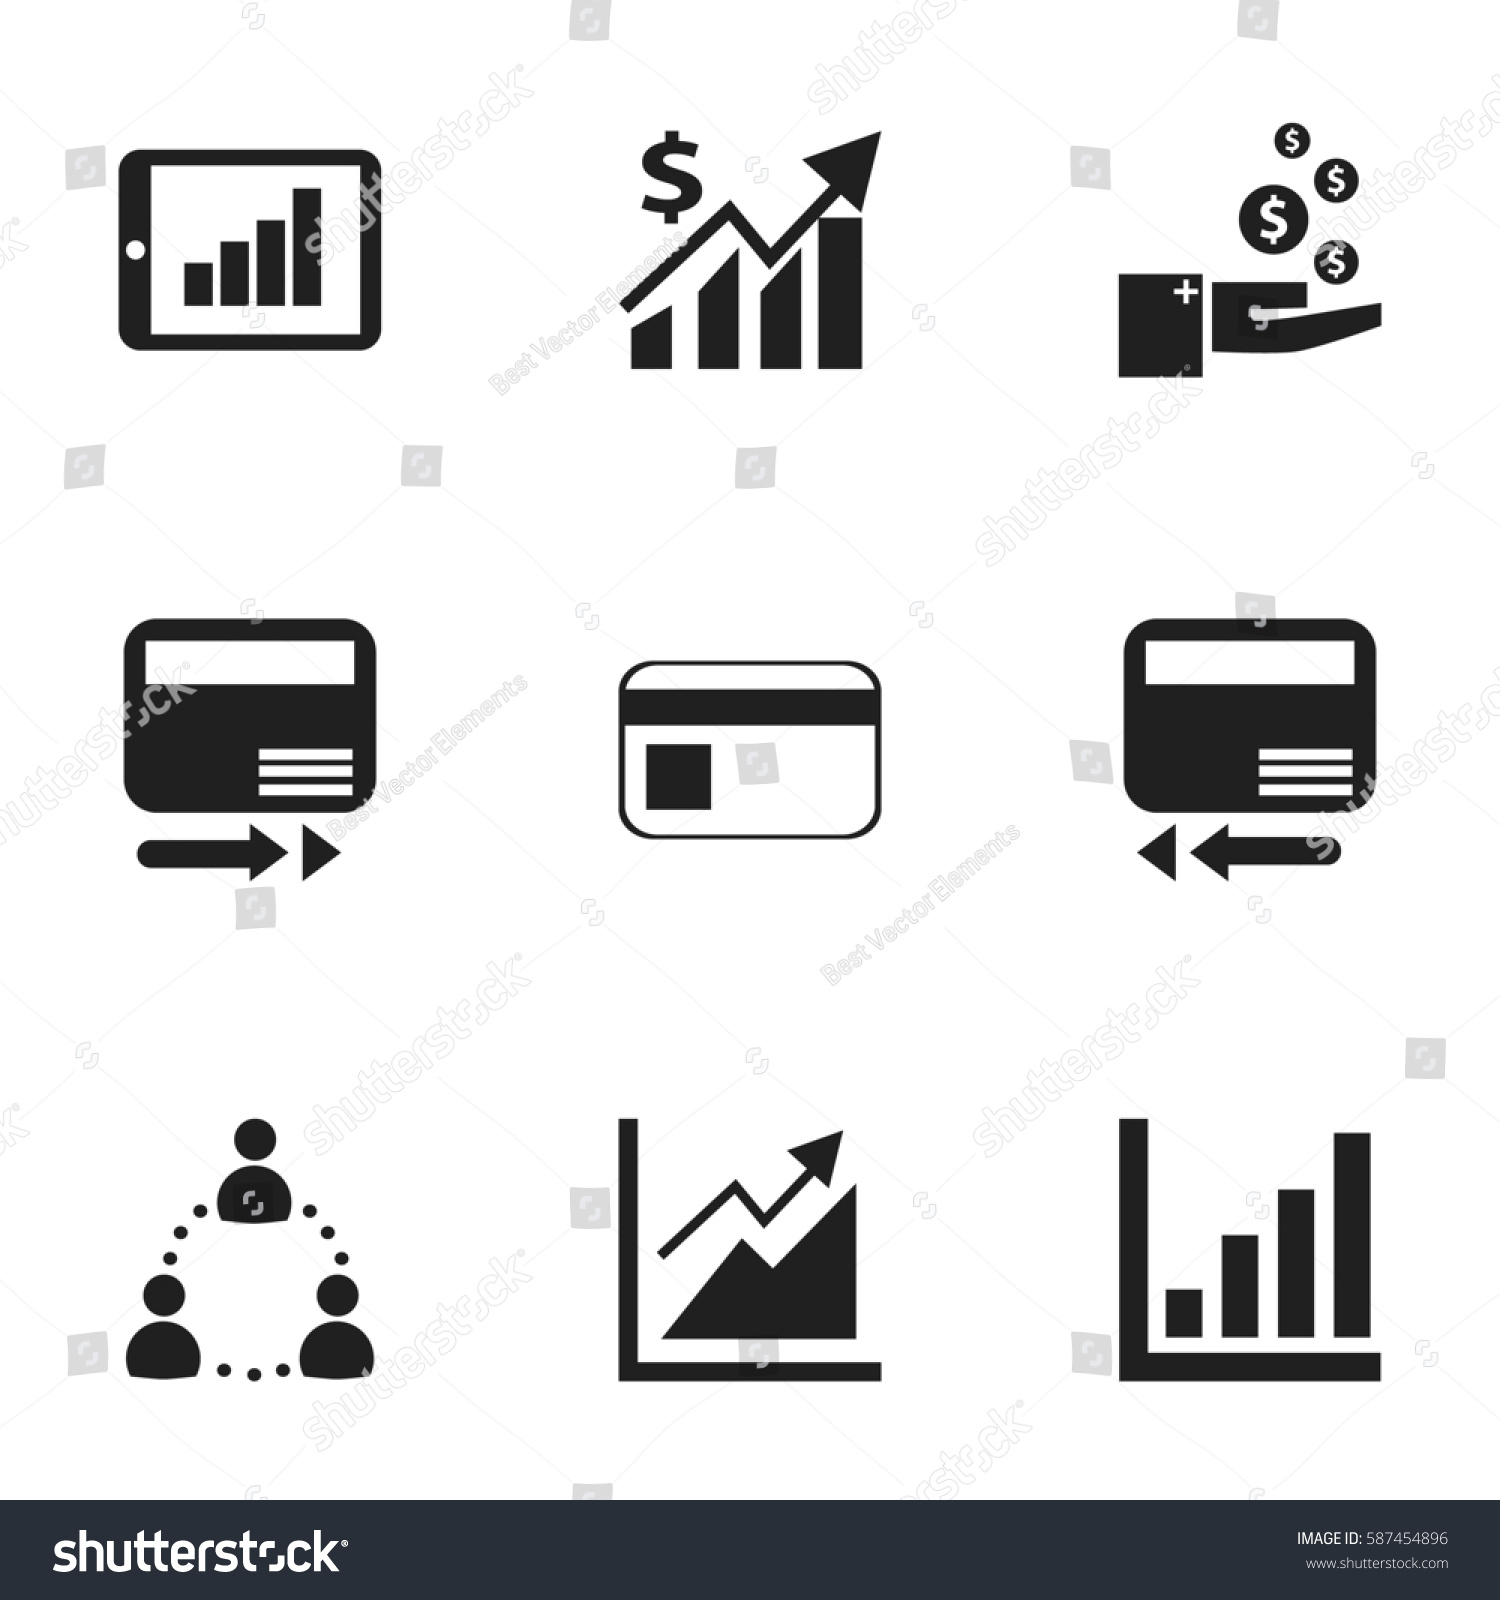 Set 9 Logical Icons Includes Symbols Stock Illustration 587454896